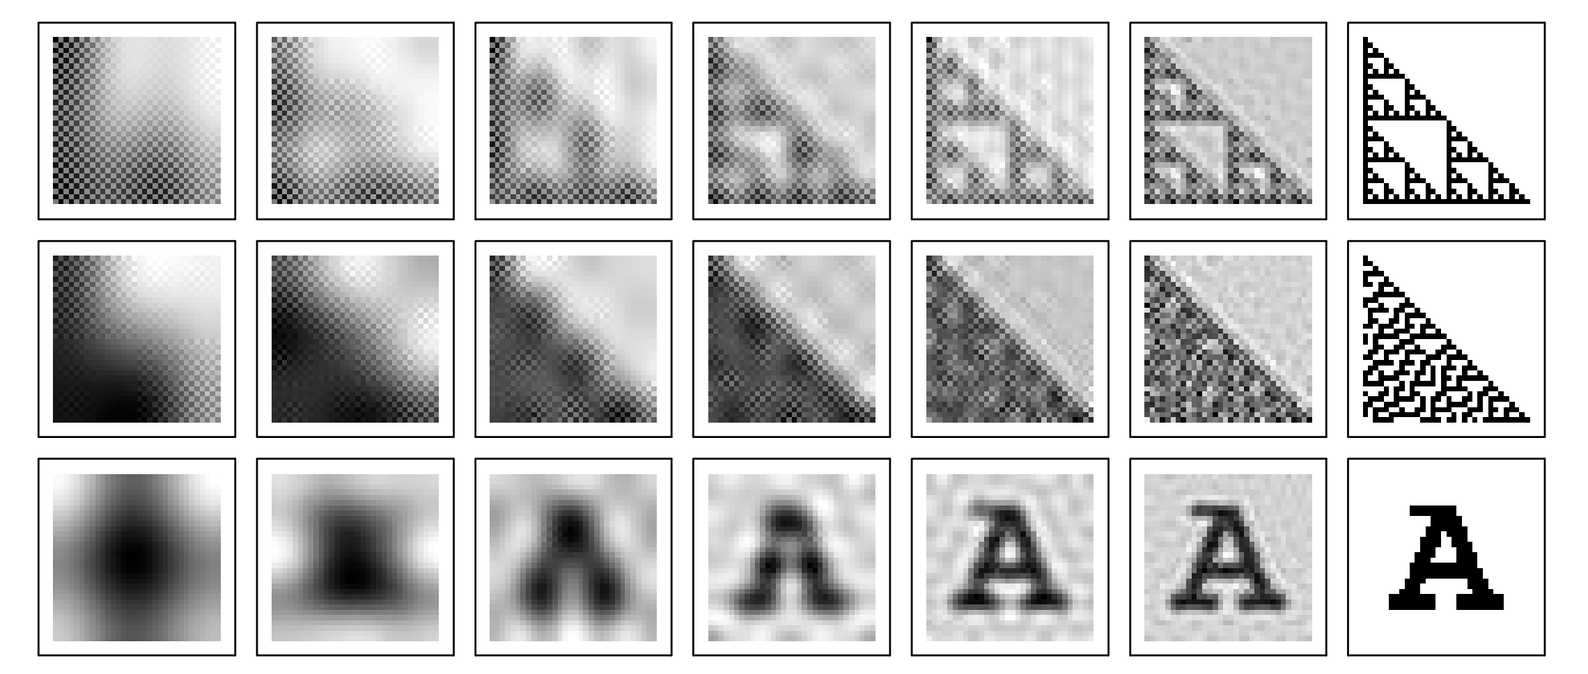 Fourier transforms image 1